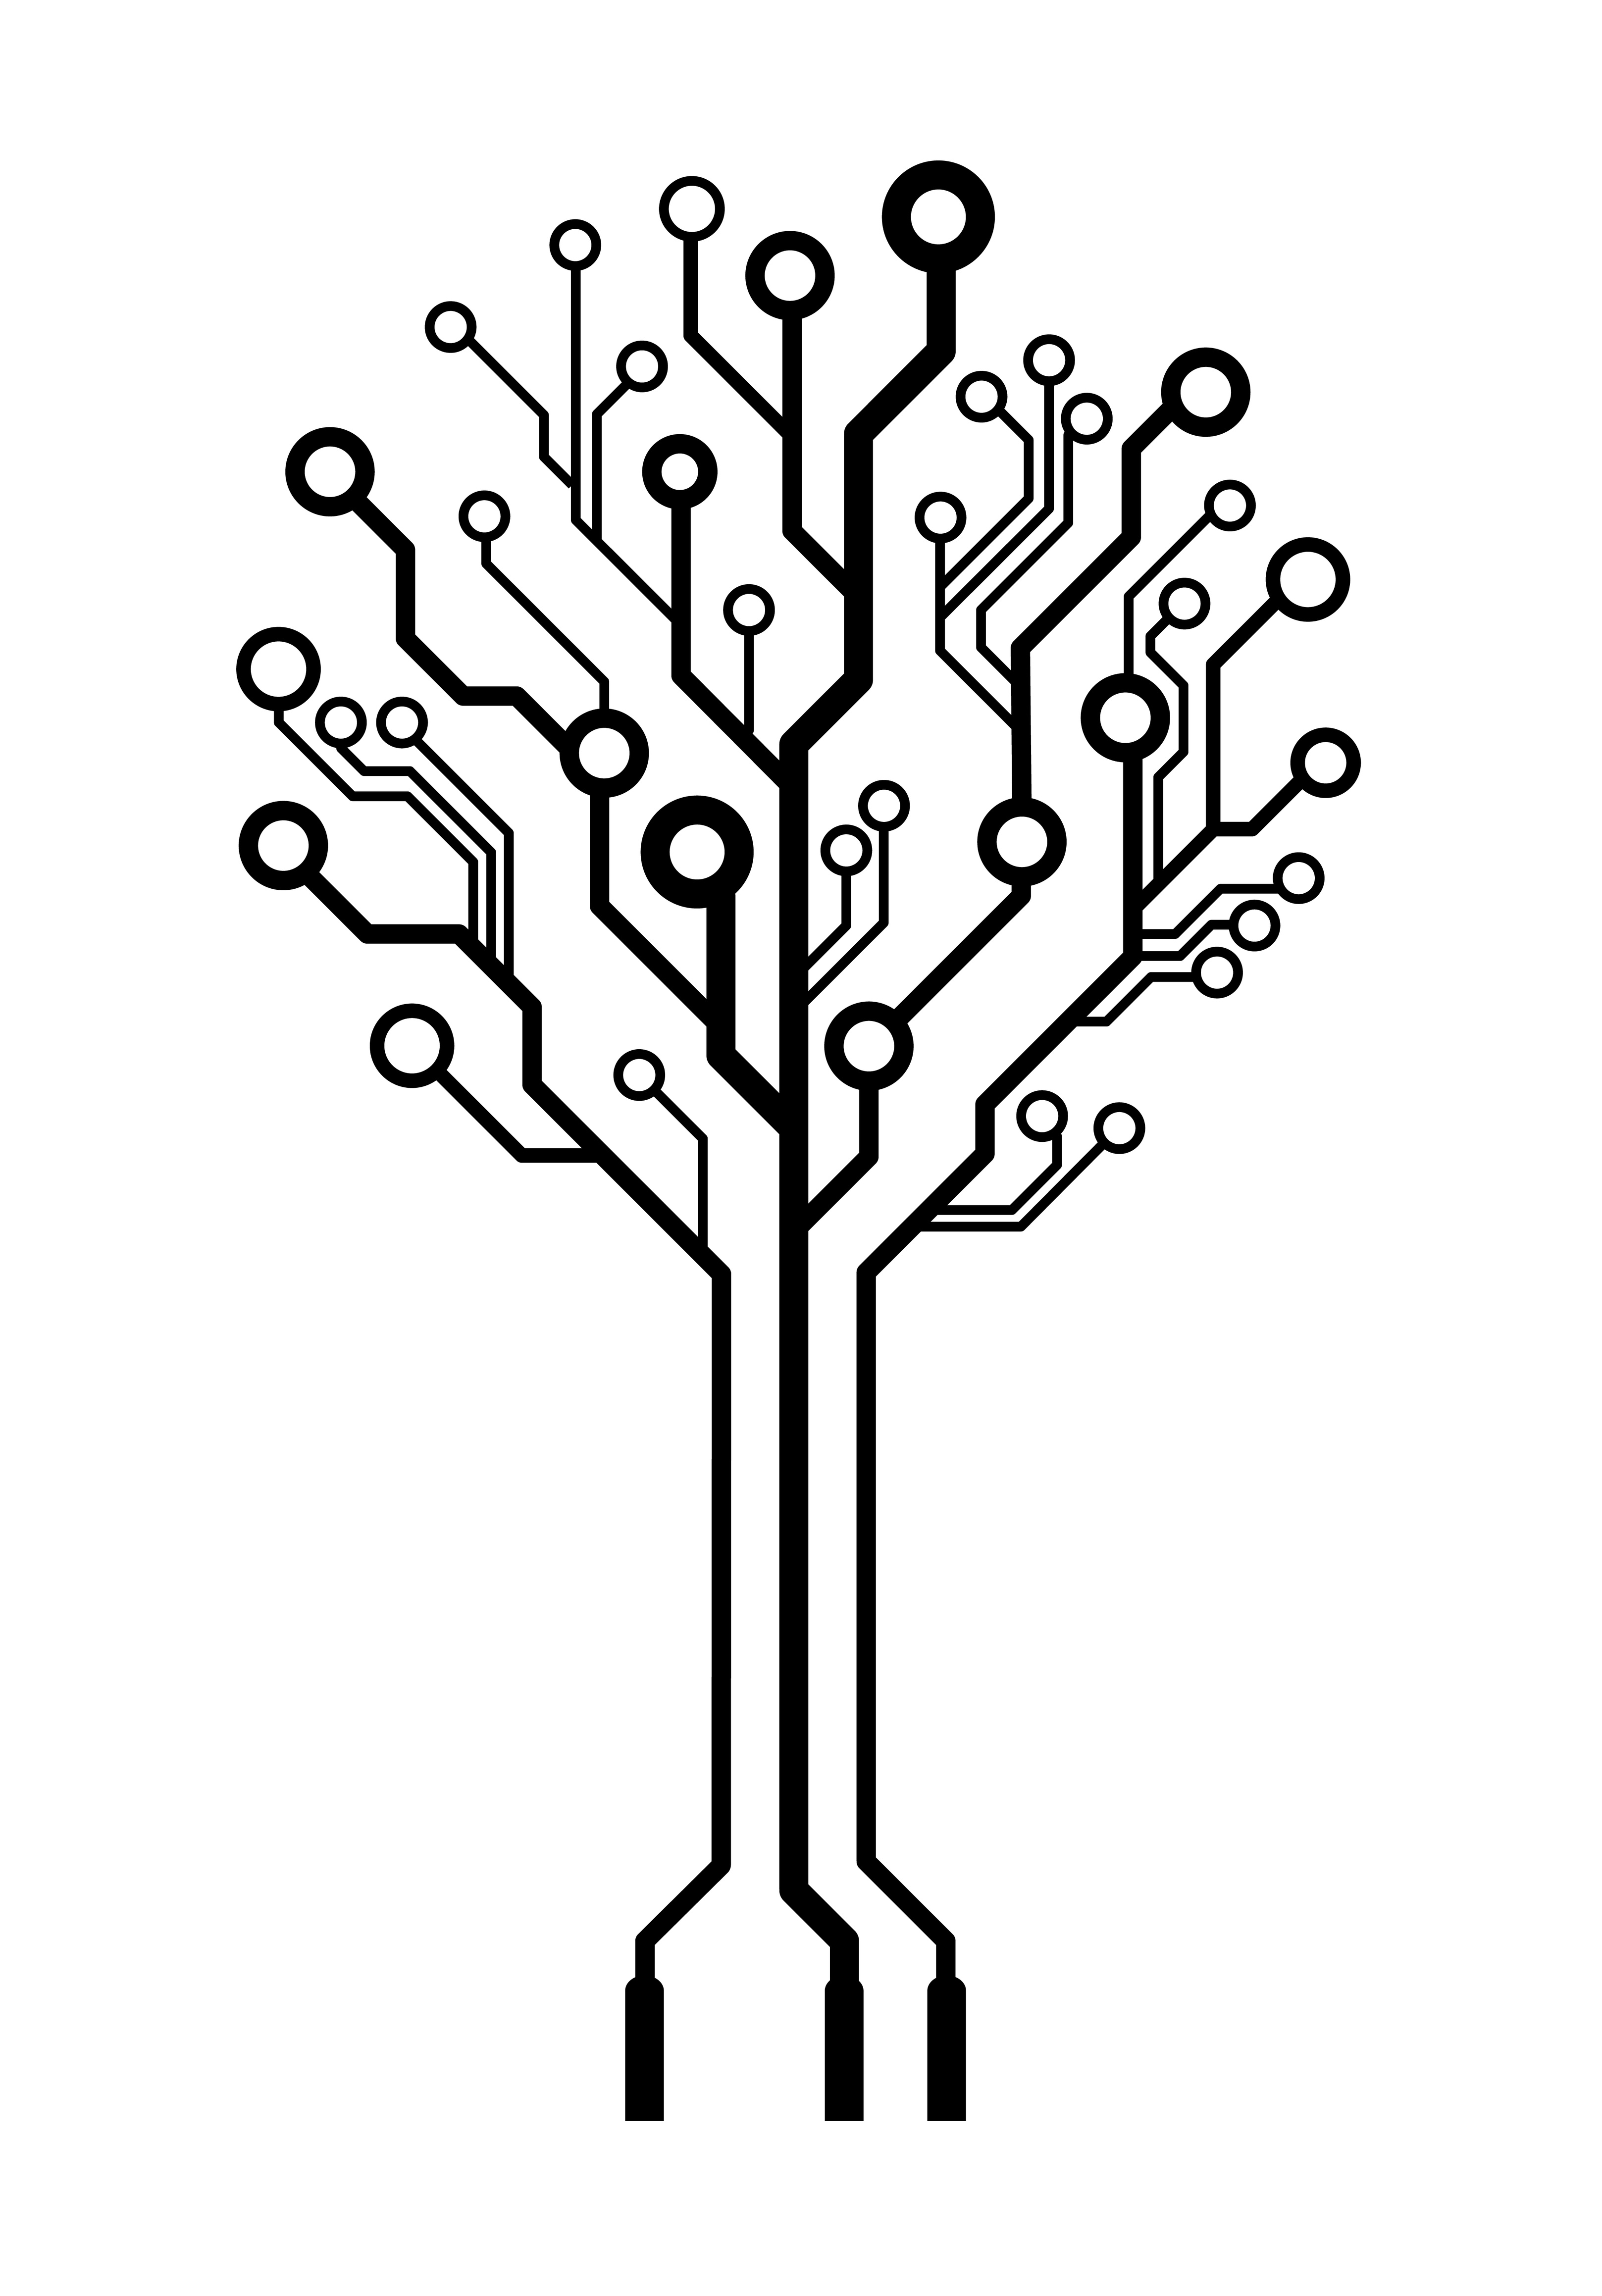 soft skills scenario based training full source example for vector logo circuit board tree